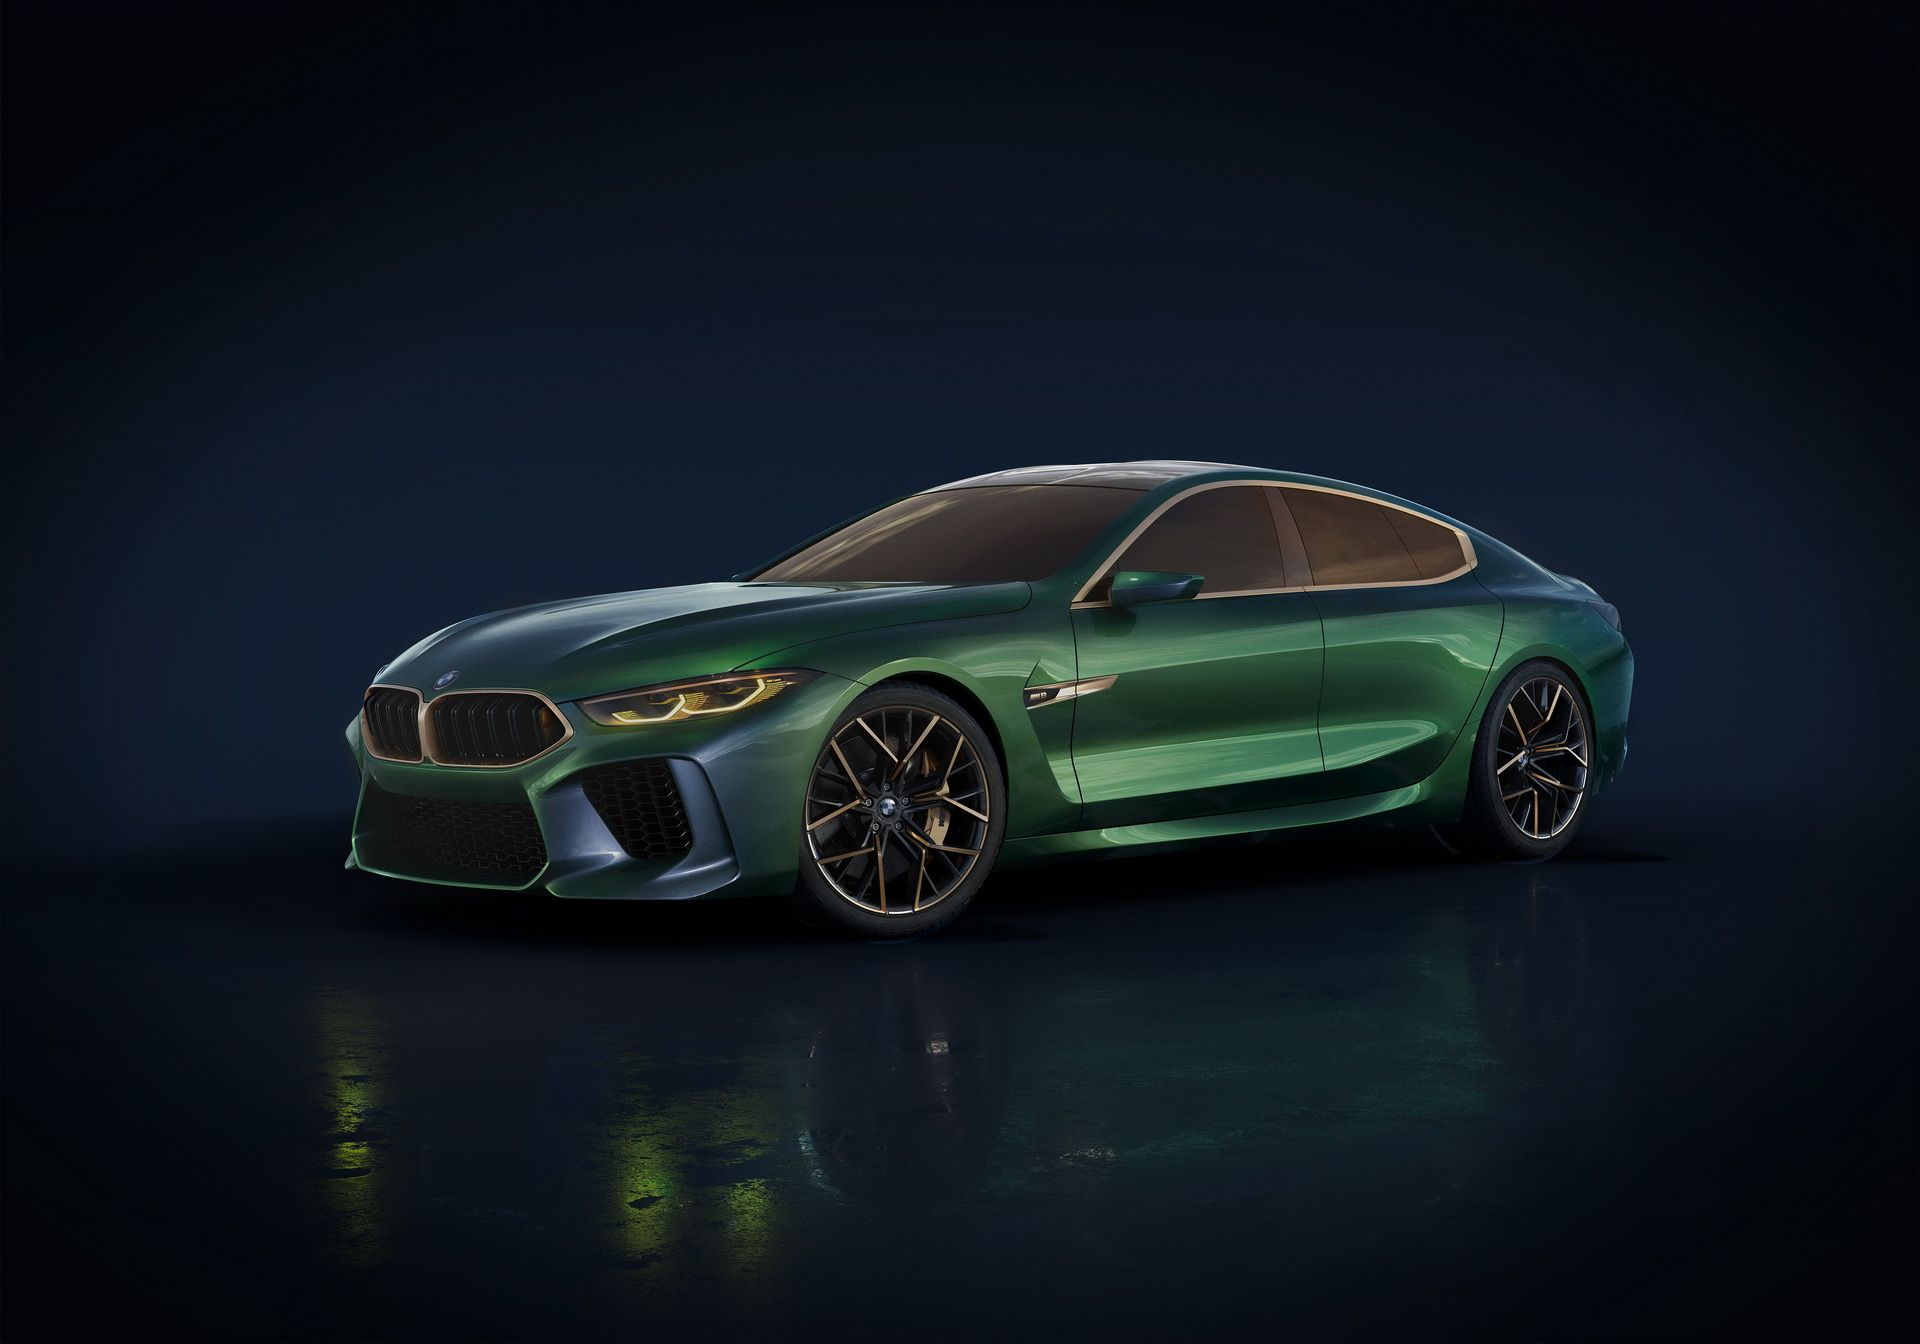 Bmw Concept M8 Gran Coupe Goes After Mercedes Amg Gt 4 Door Bmw